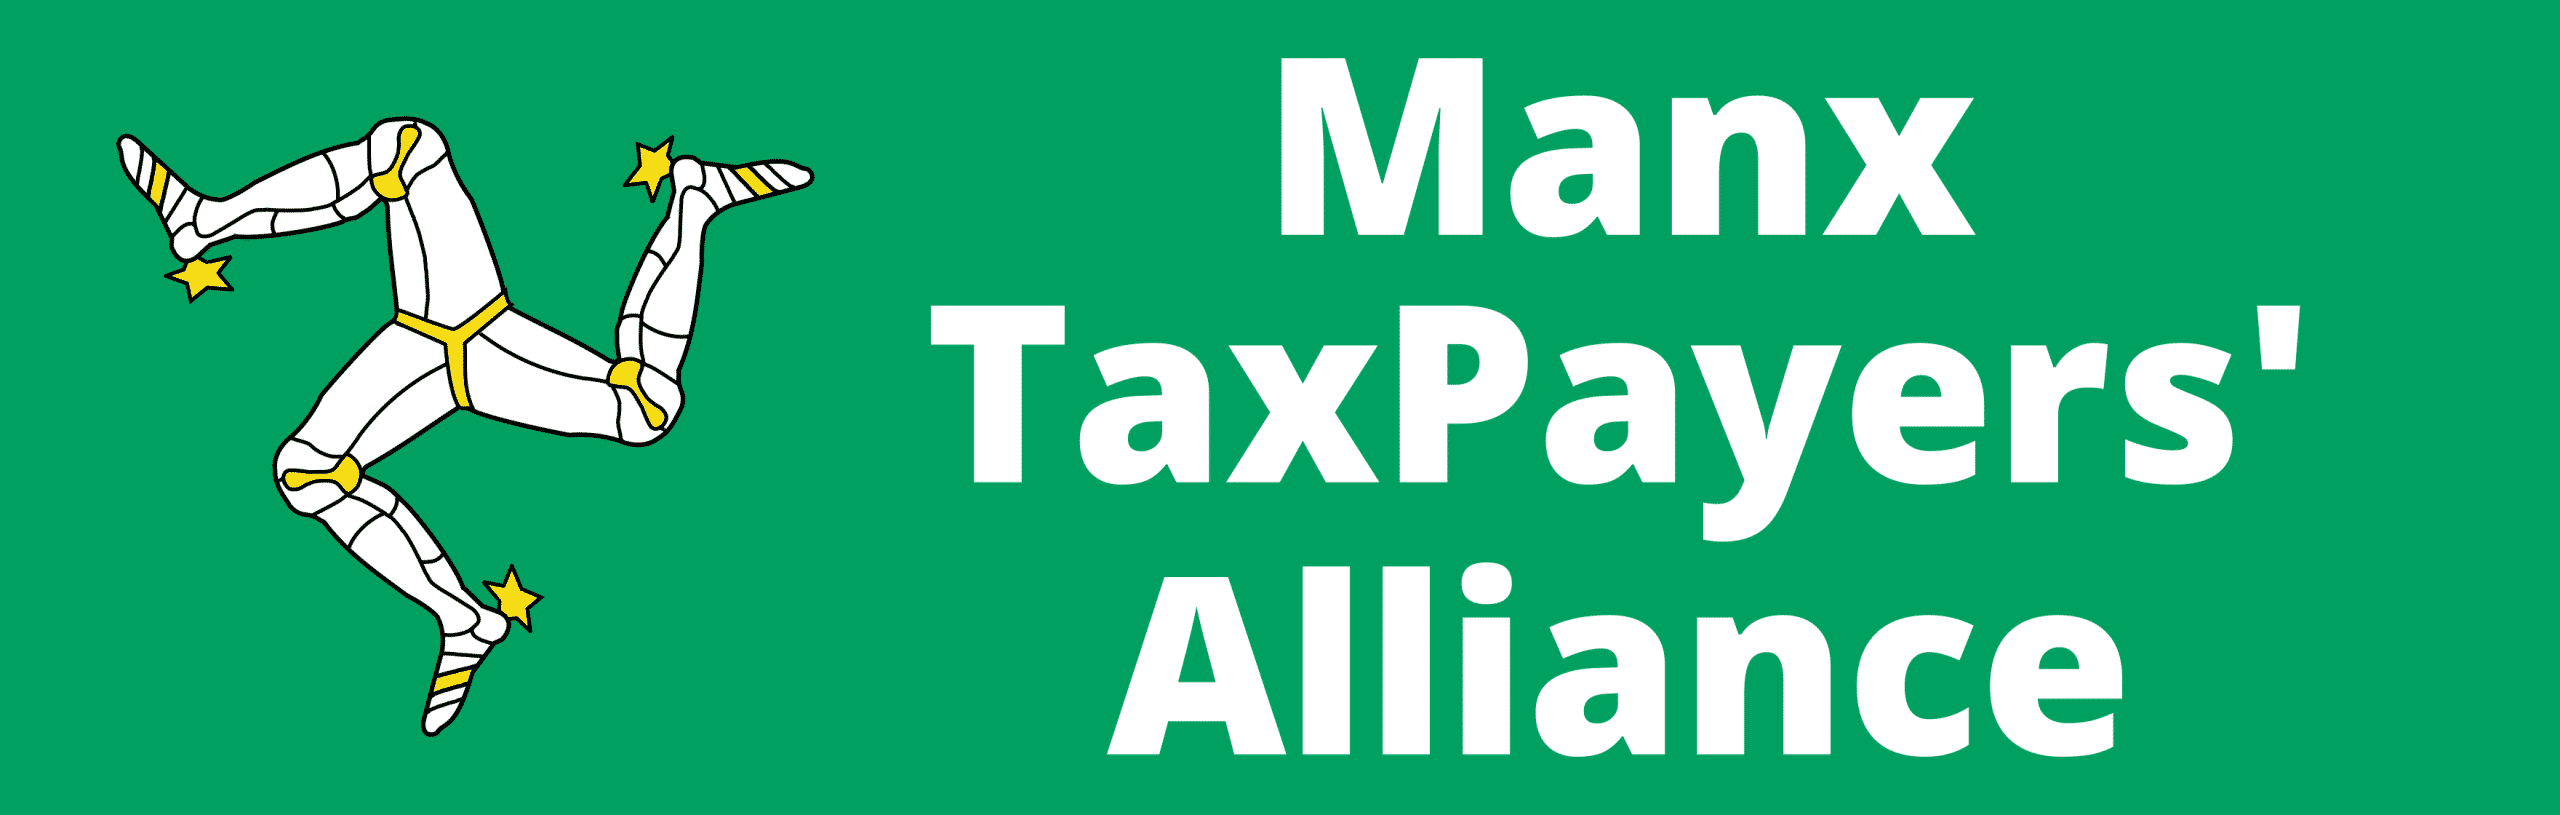 Manx TaxPayers Alliance Wide Logo in Colour